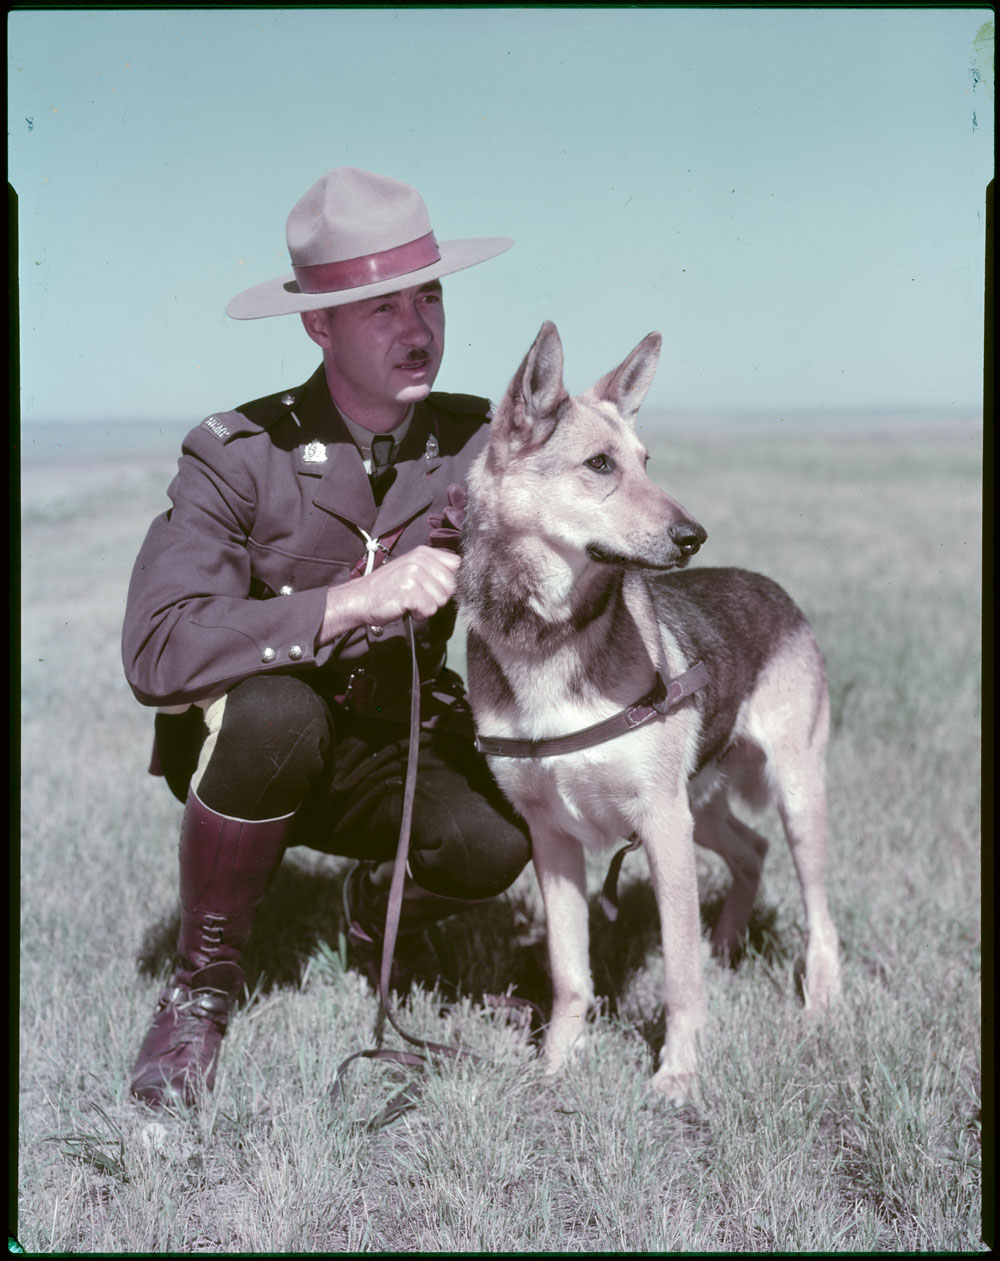 Colour photograph of an officer posing with a dog in a field.